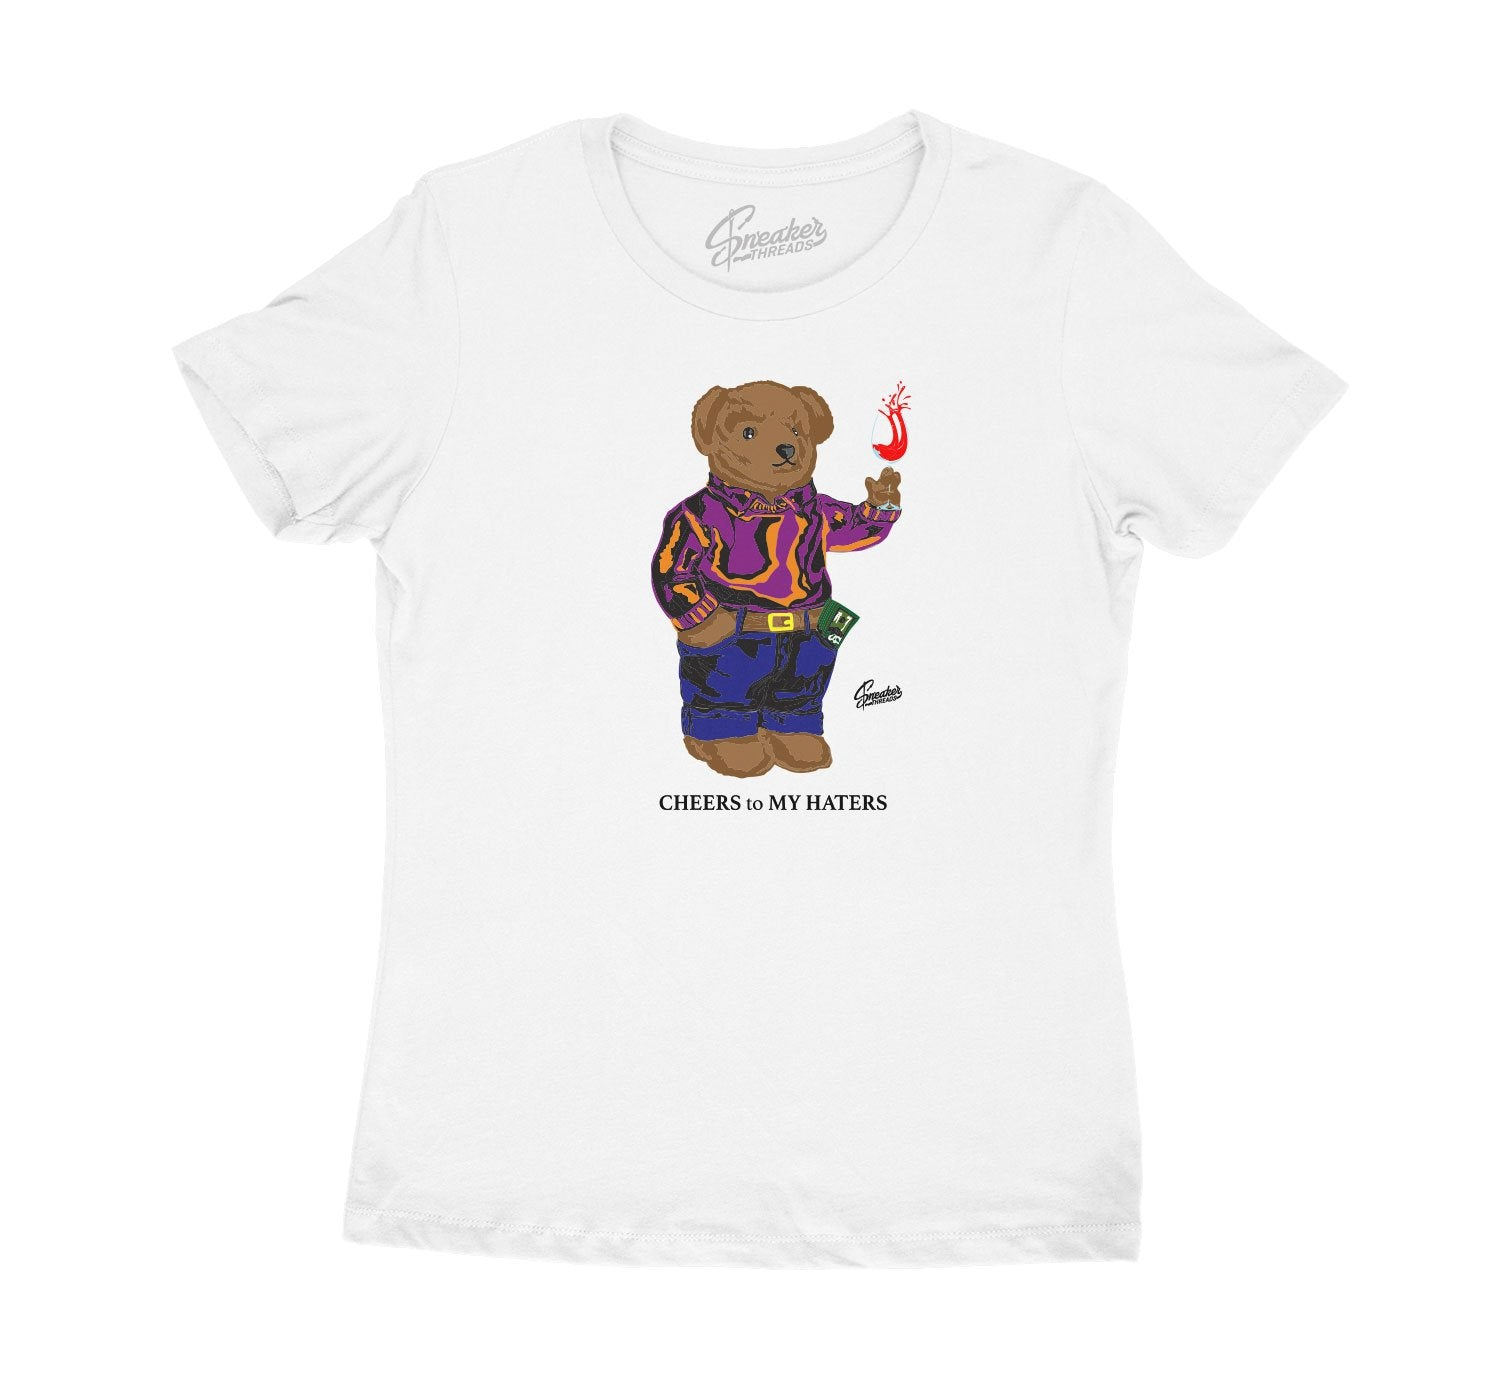 Jordan 4 Rush Violet Cheers Bear Shirt for women